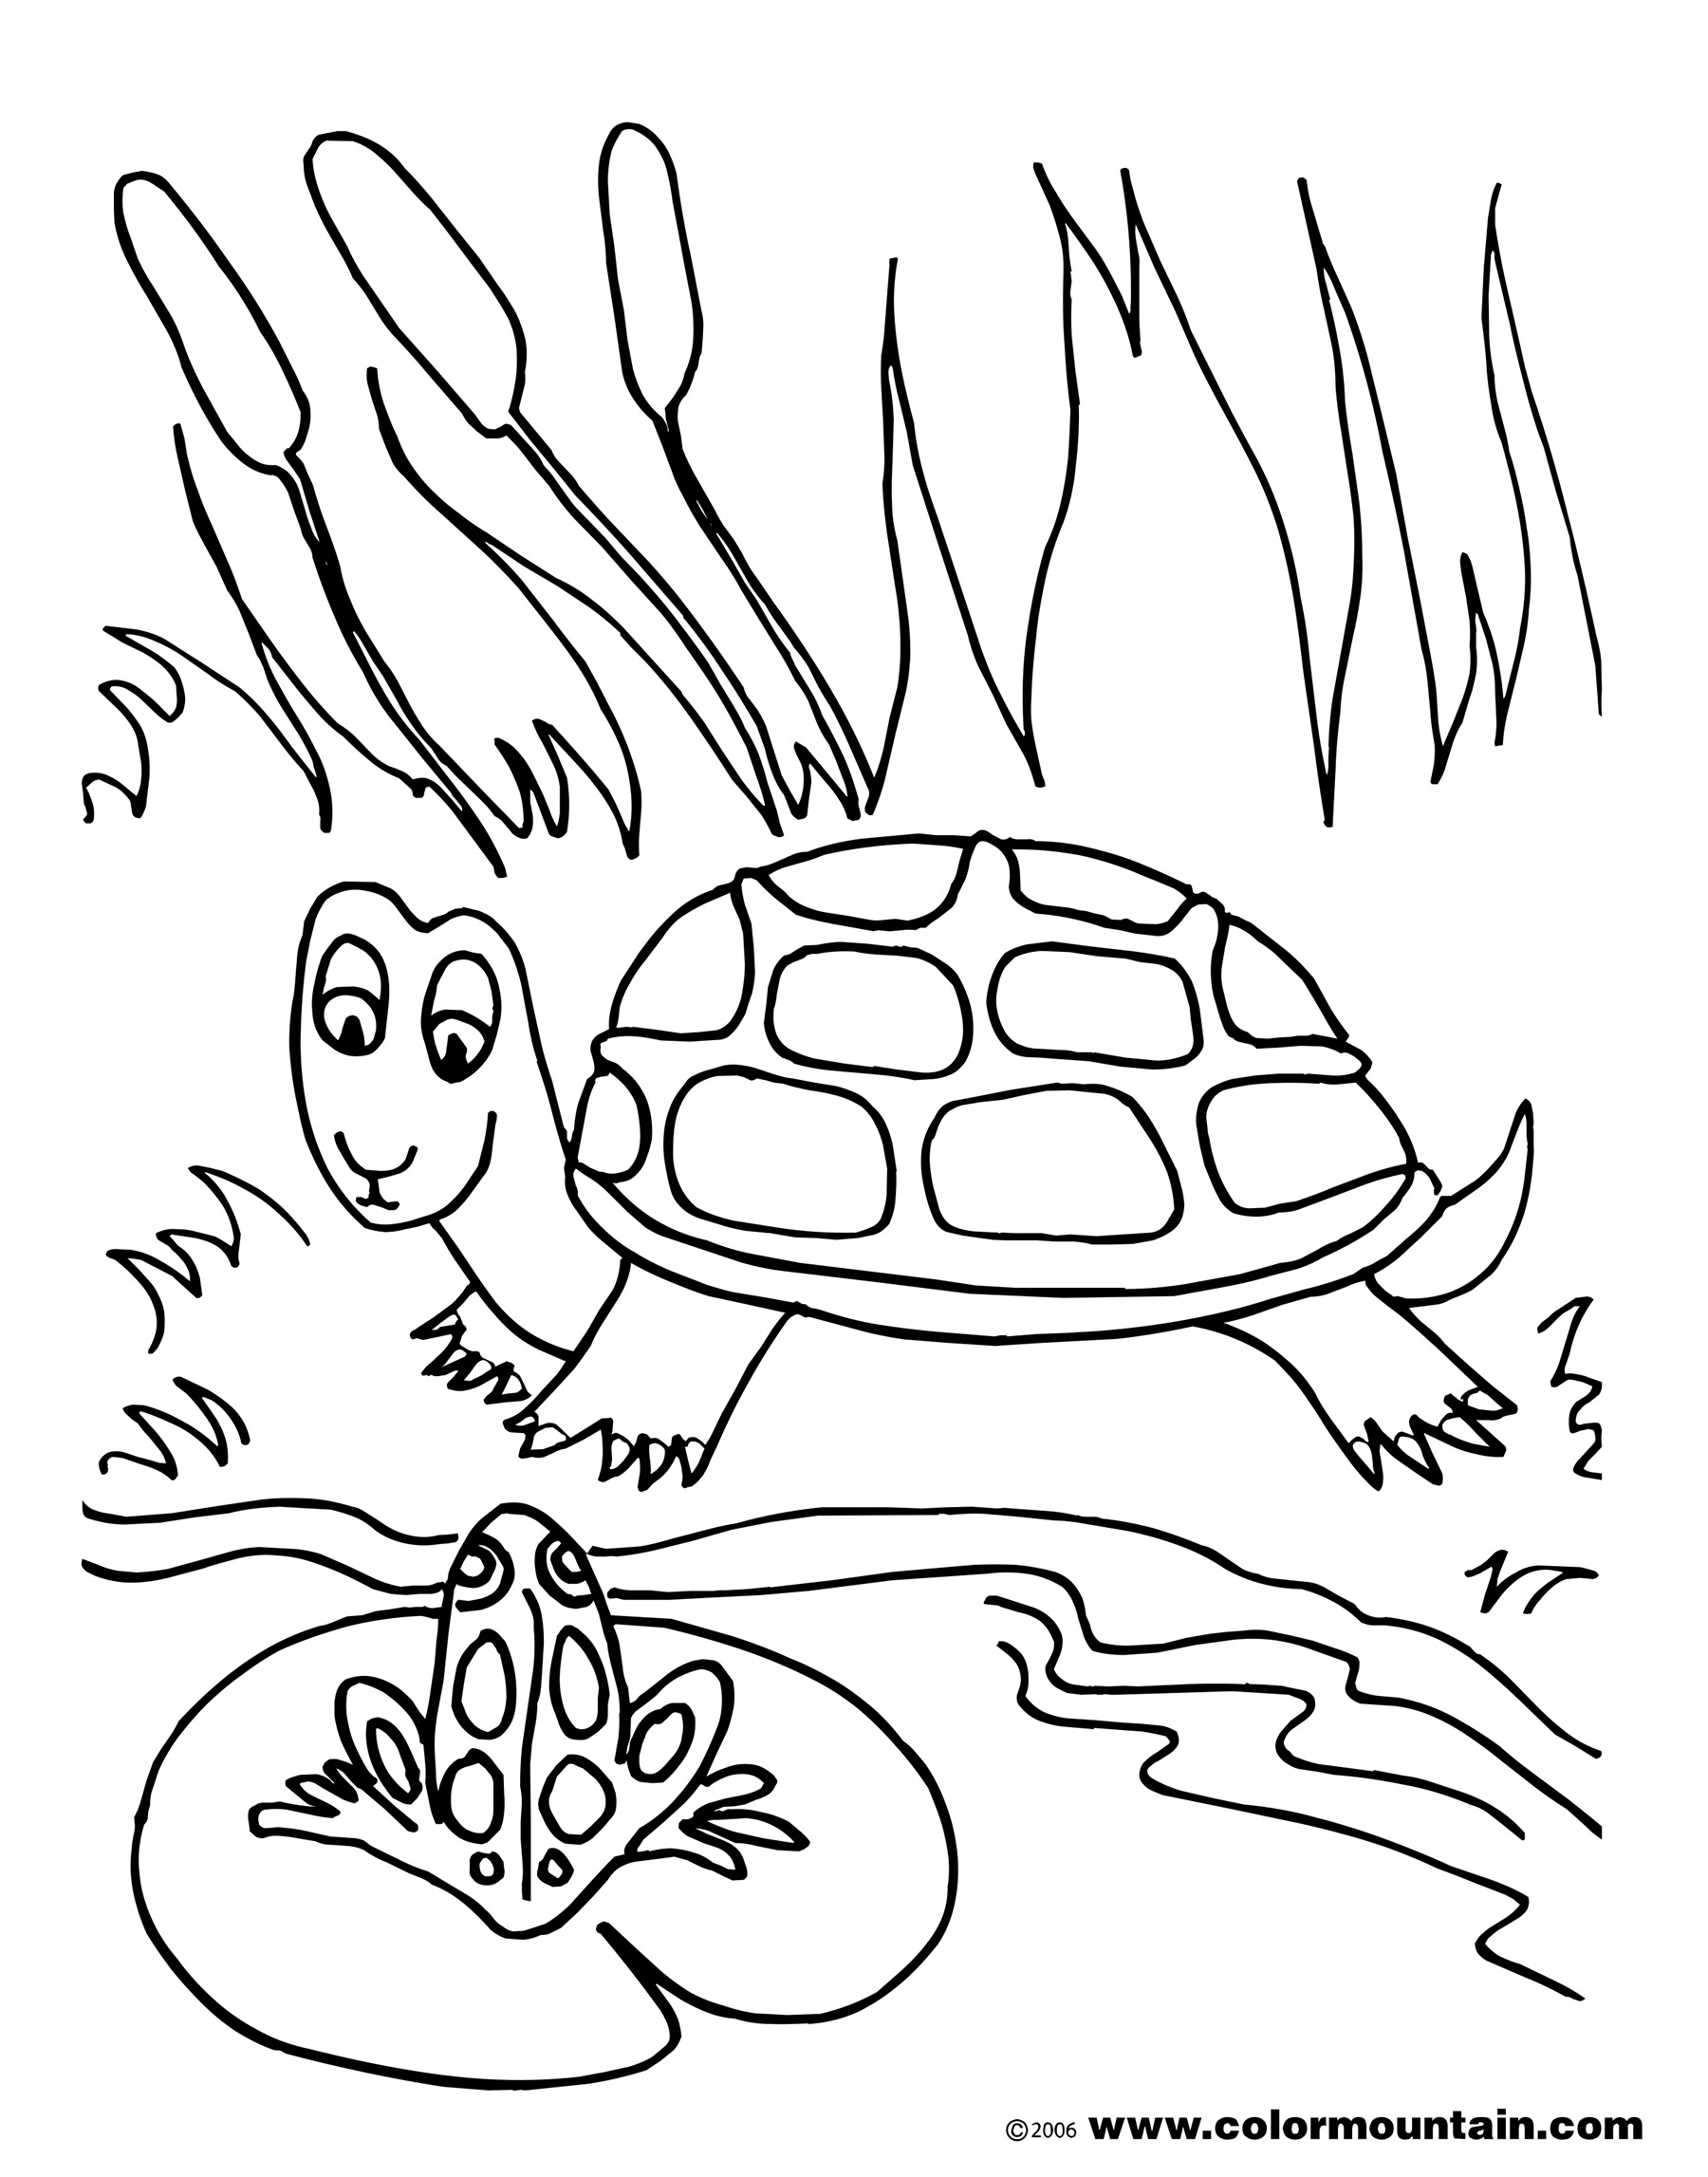 pond ecosystem coloring pages | Pond Drawing at GetDrawings | Free download